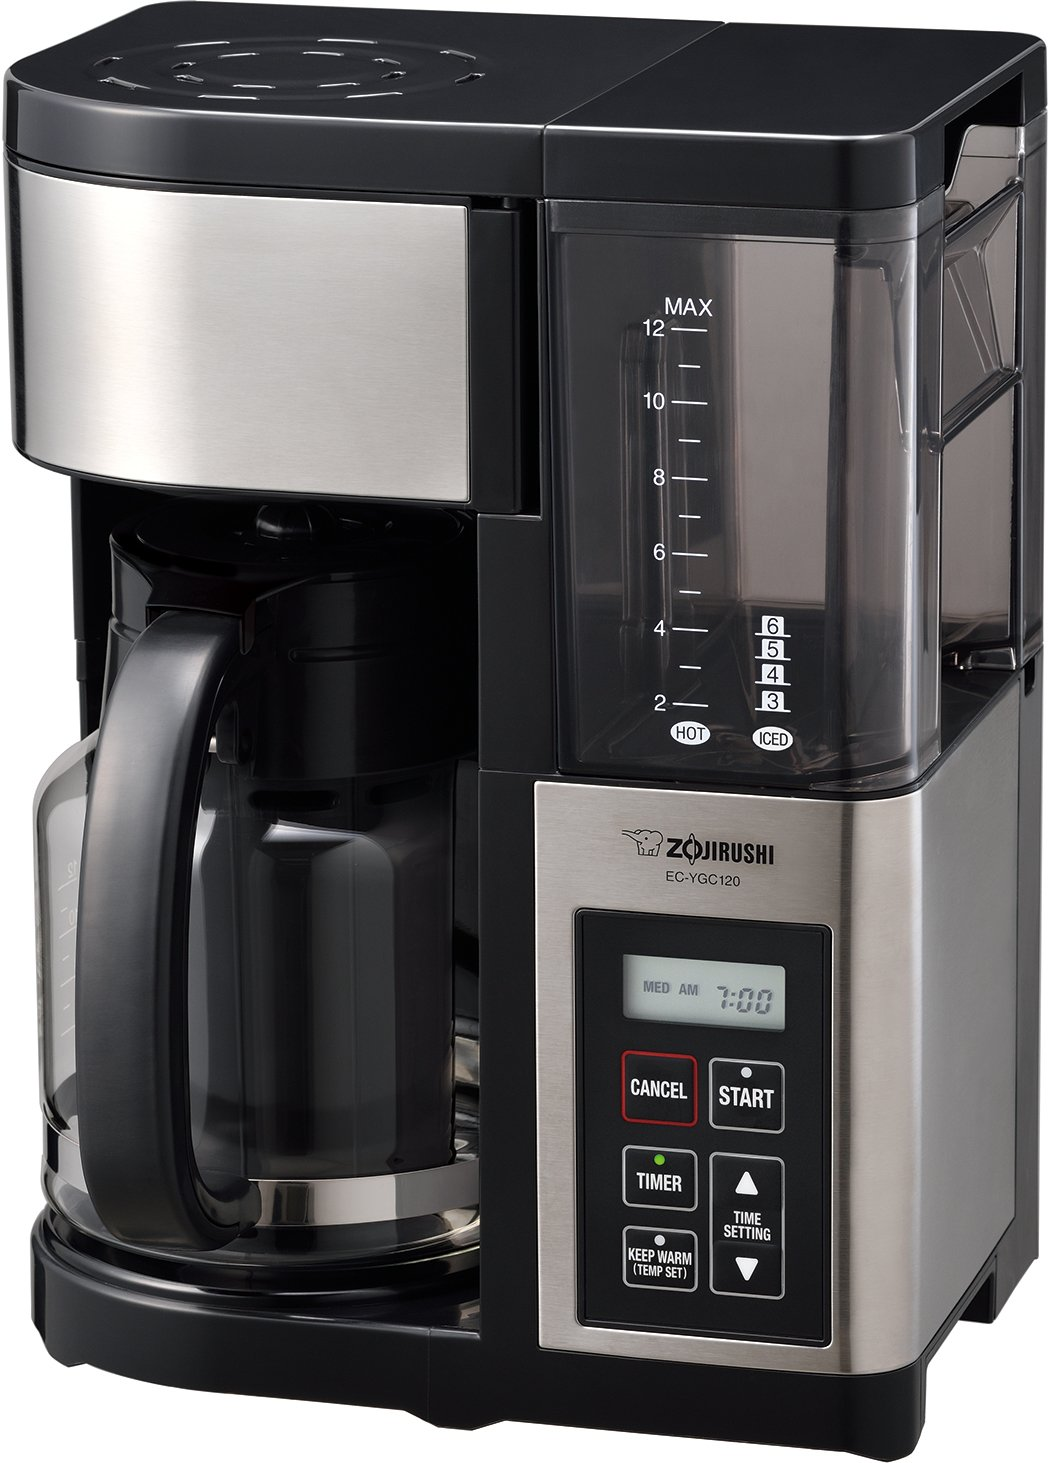 Zojirushi EC-YGC120 Fresh Brew Plus 12-Cup Coffee Maker, Stainless Black